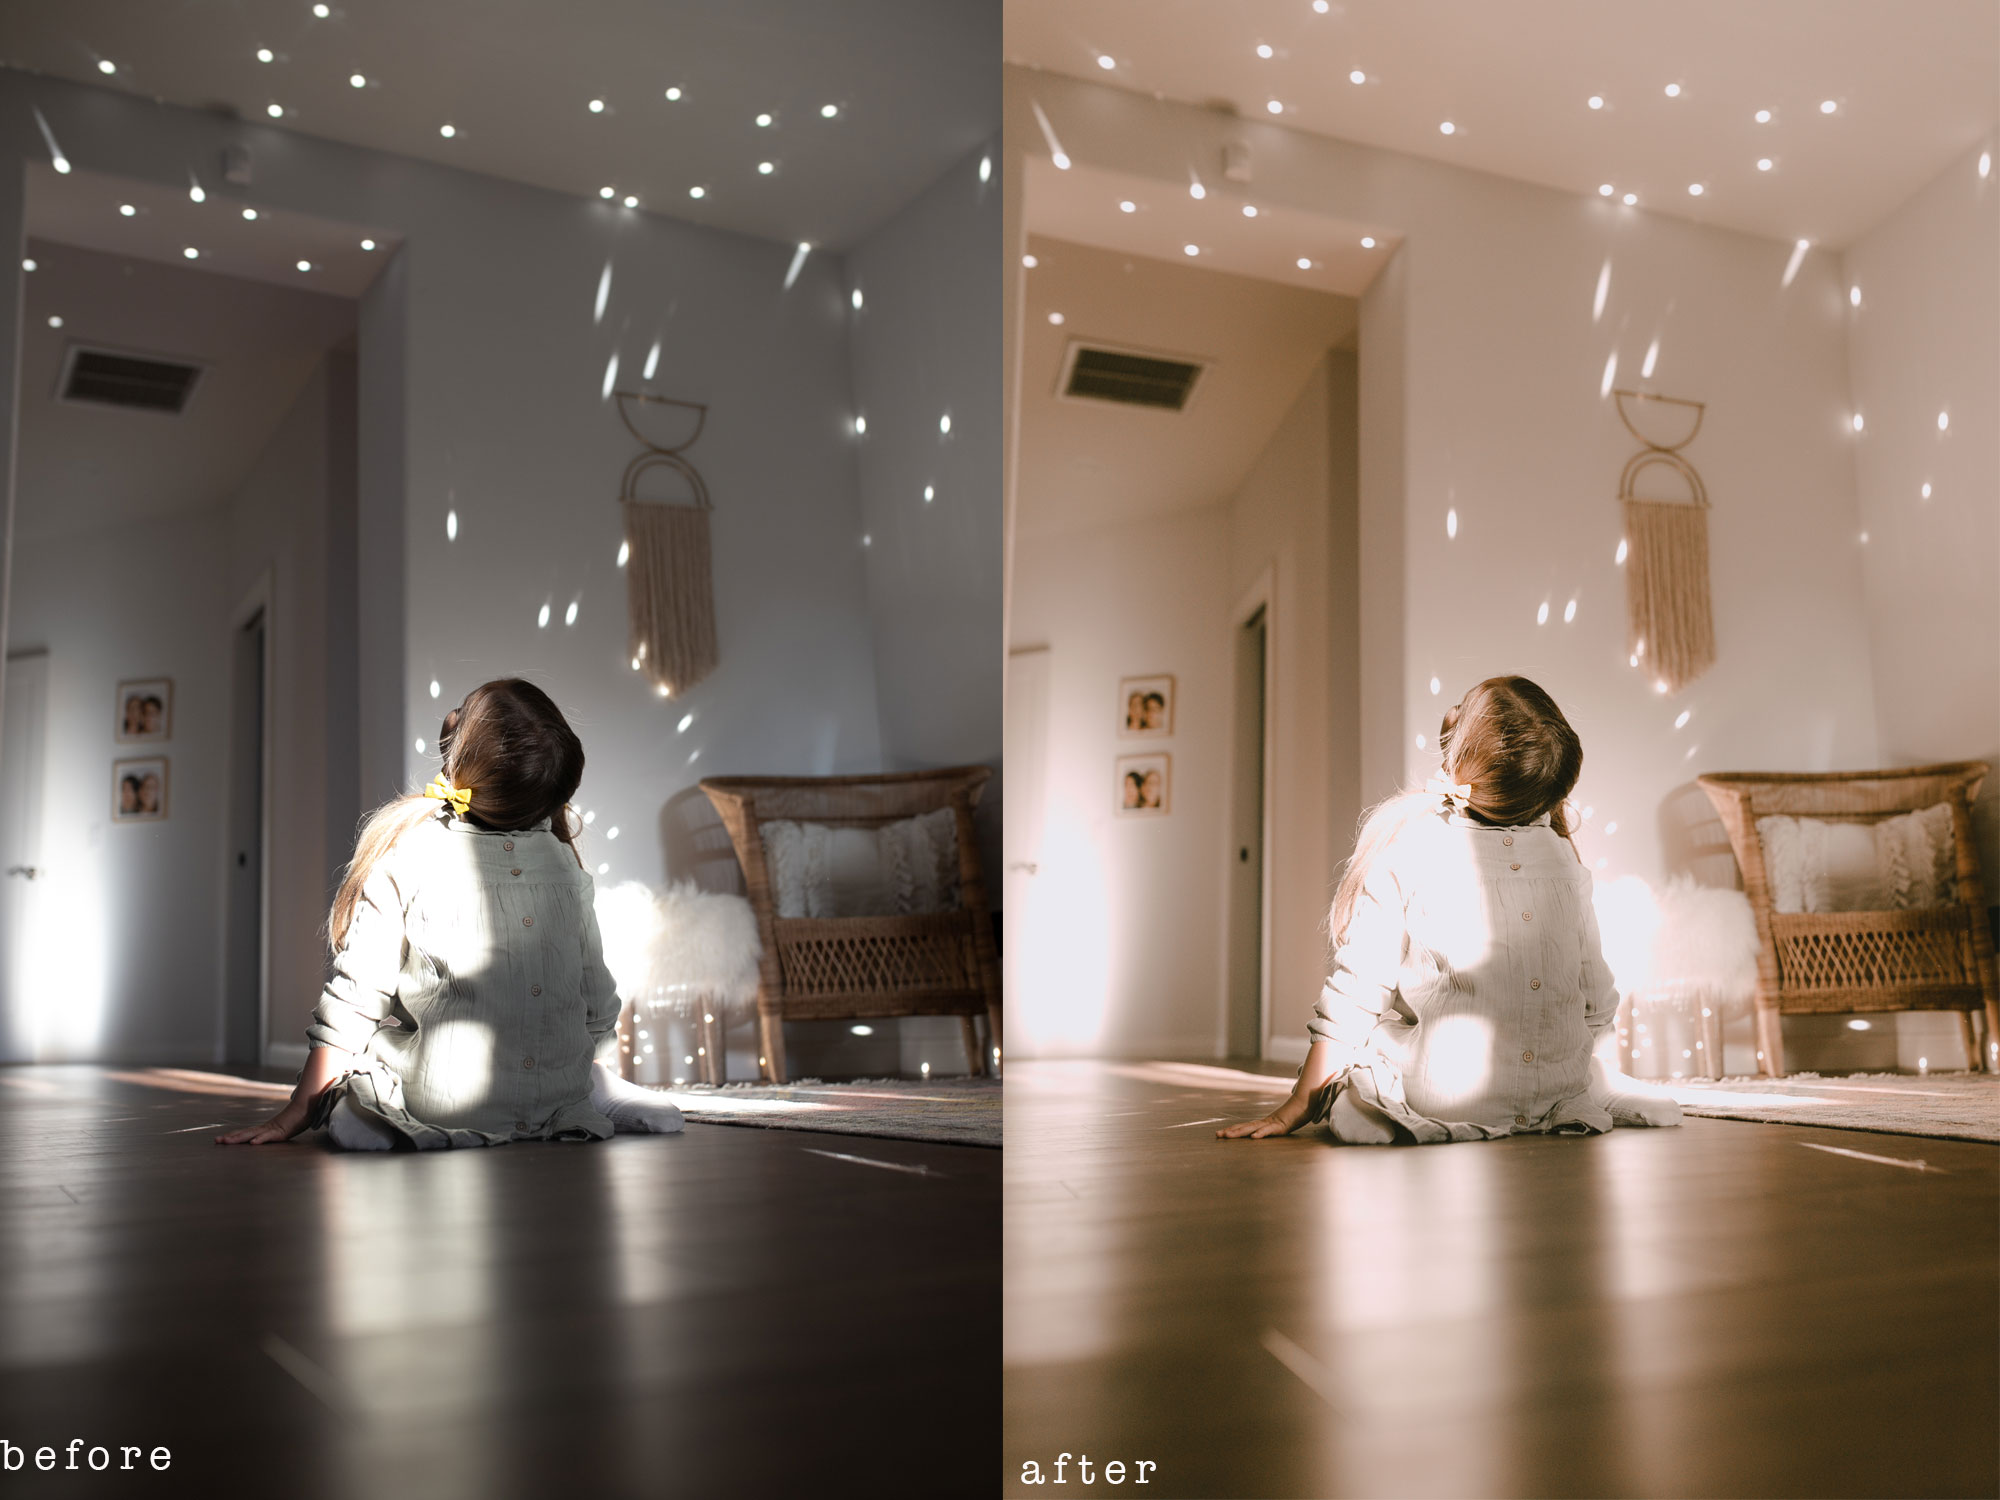 new presets from the lovedesignedlife #theldlpresets #lightroompresets #home #childhood #discoball #photoediting